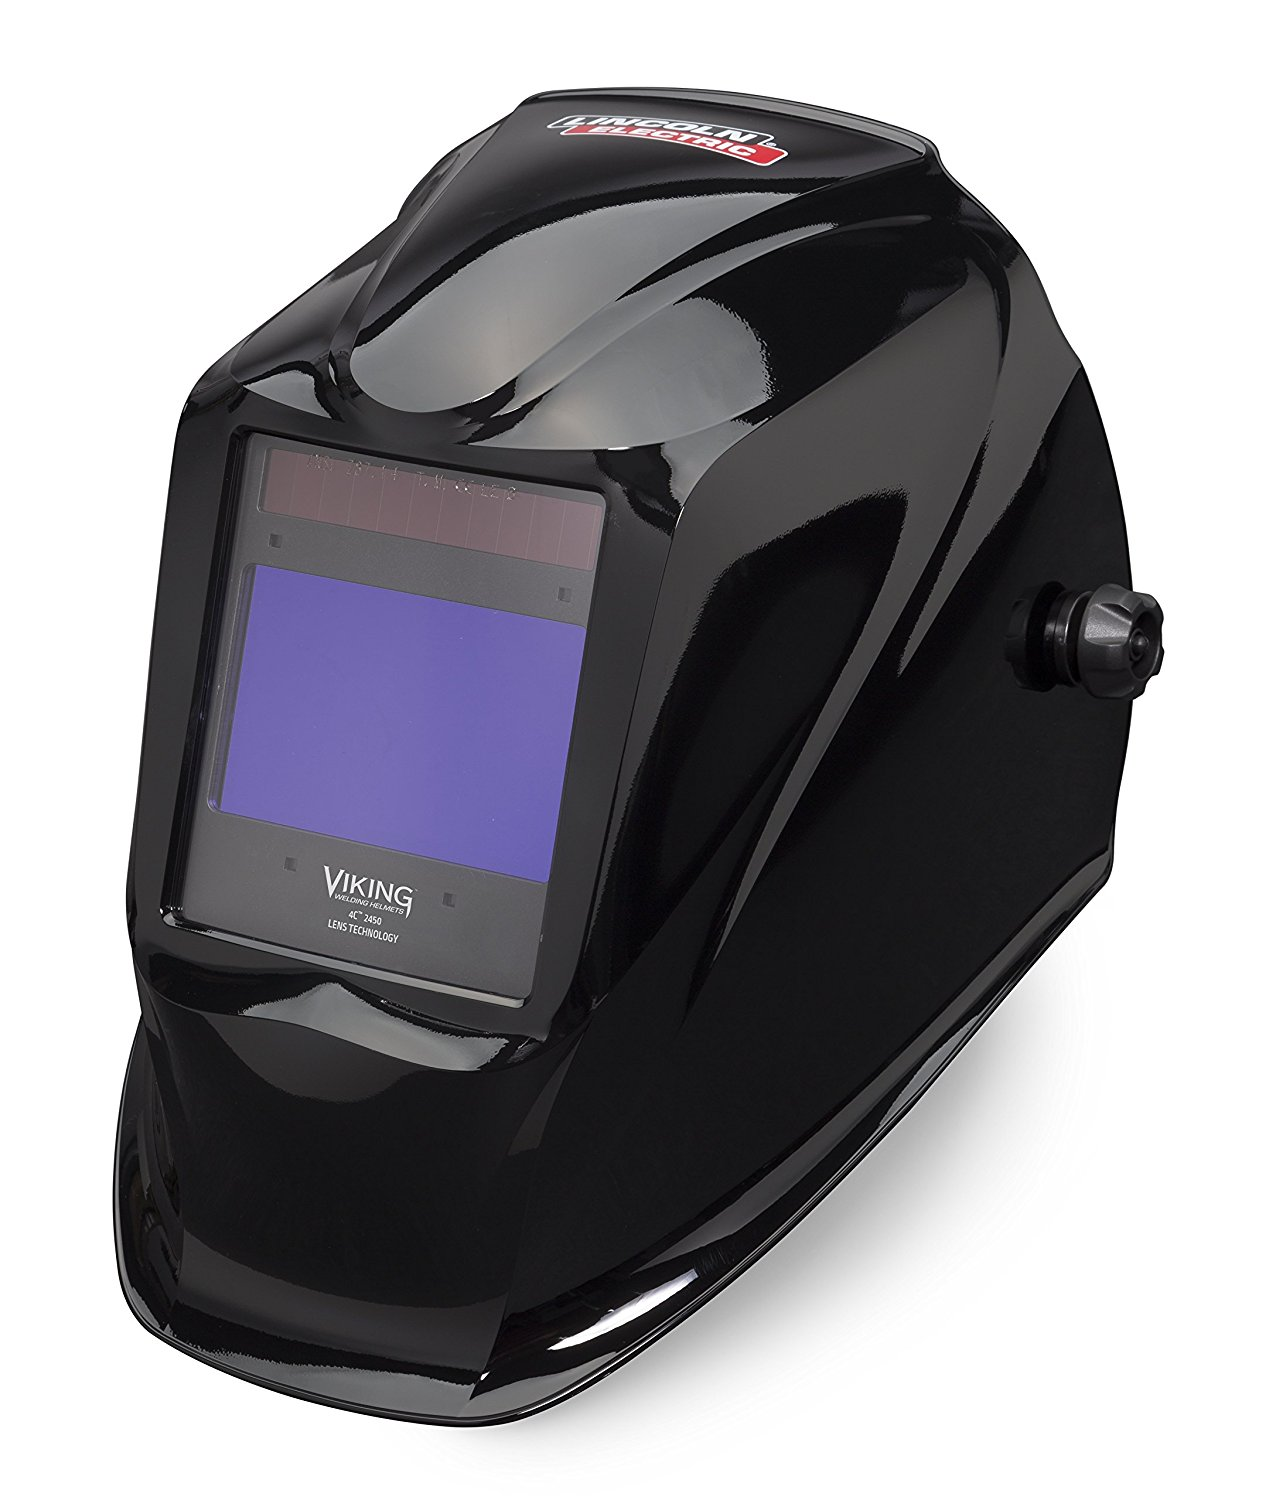 Lincoln Electric VIKING 2450 Black Welding Helmet with 4C Lens Technology - K3028-3